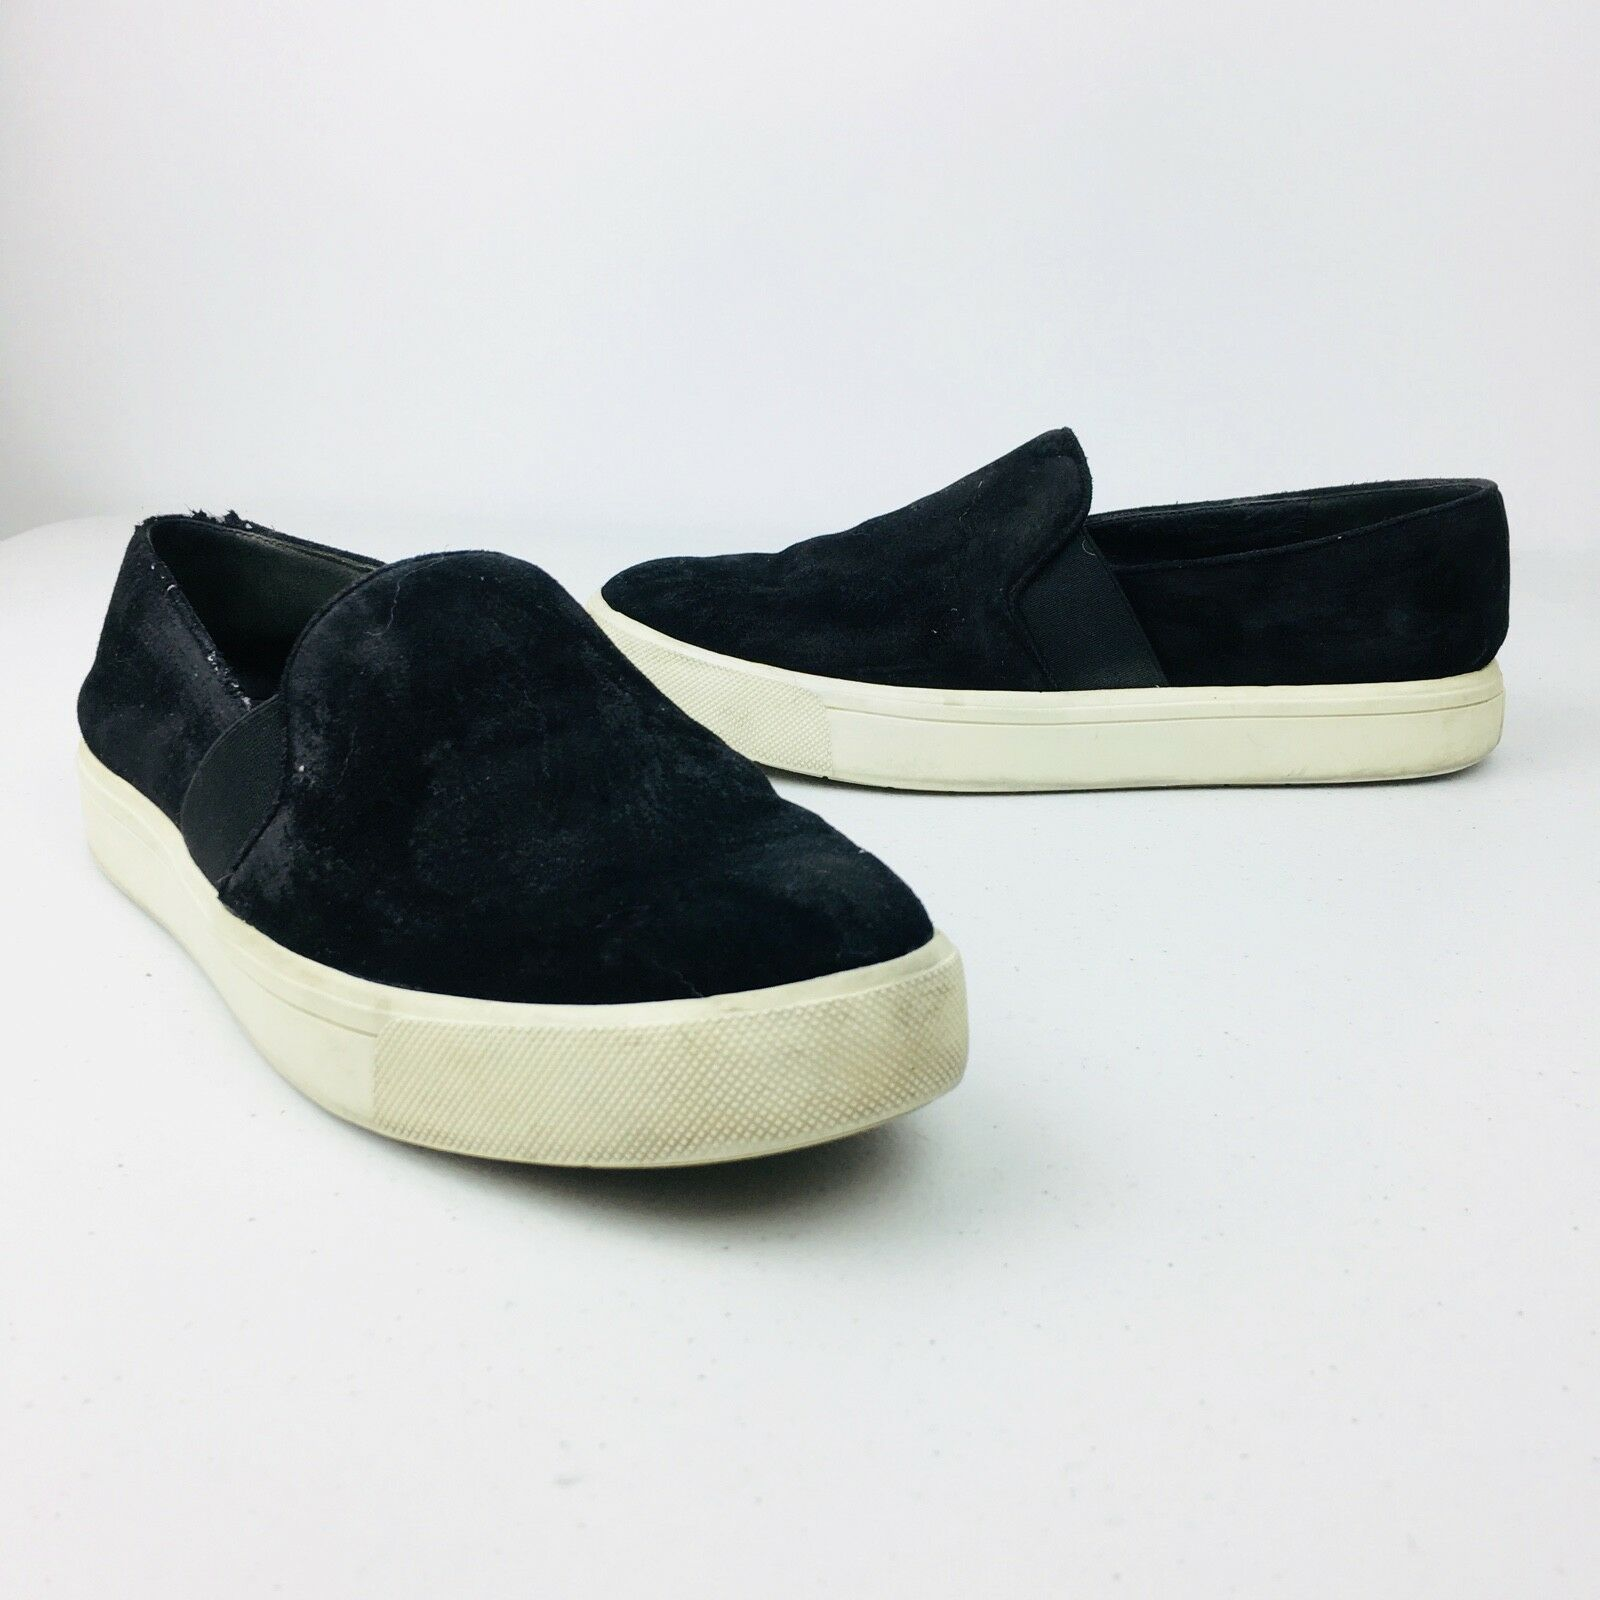 186e253766143 Womens Black Suede shoes Sneakers Flats Slip On Casual Platform Size ...